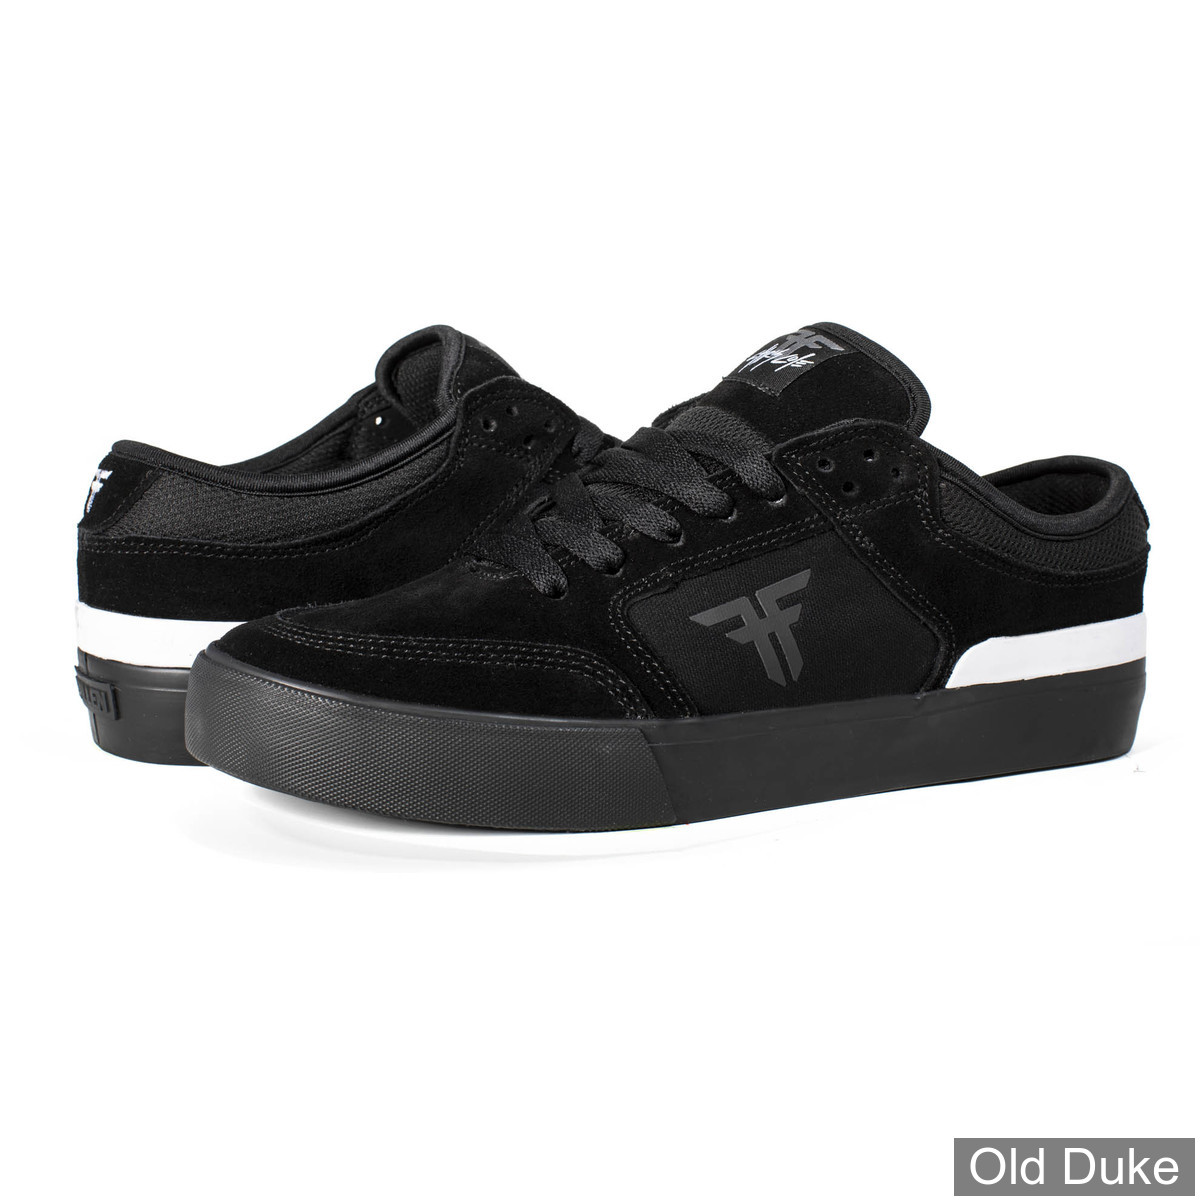 SKATE SHOES - FALLEN - RIPPER - BLACK BLACK WHITE - TAILLE : 42